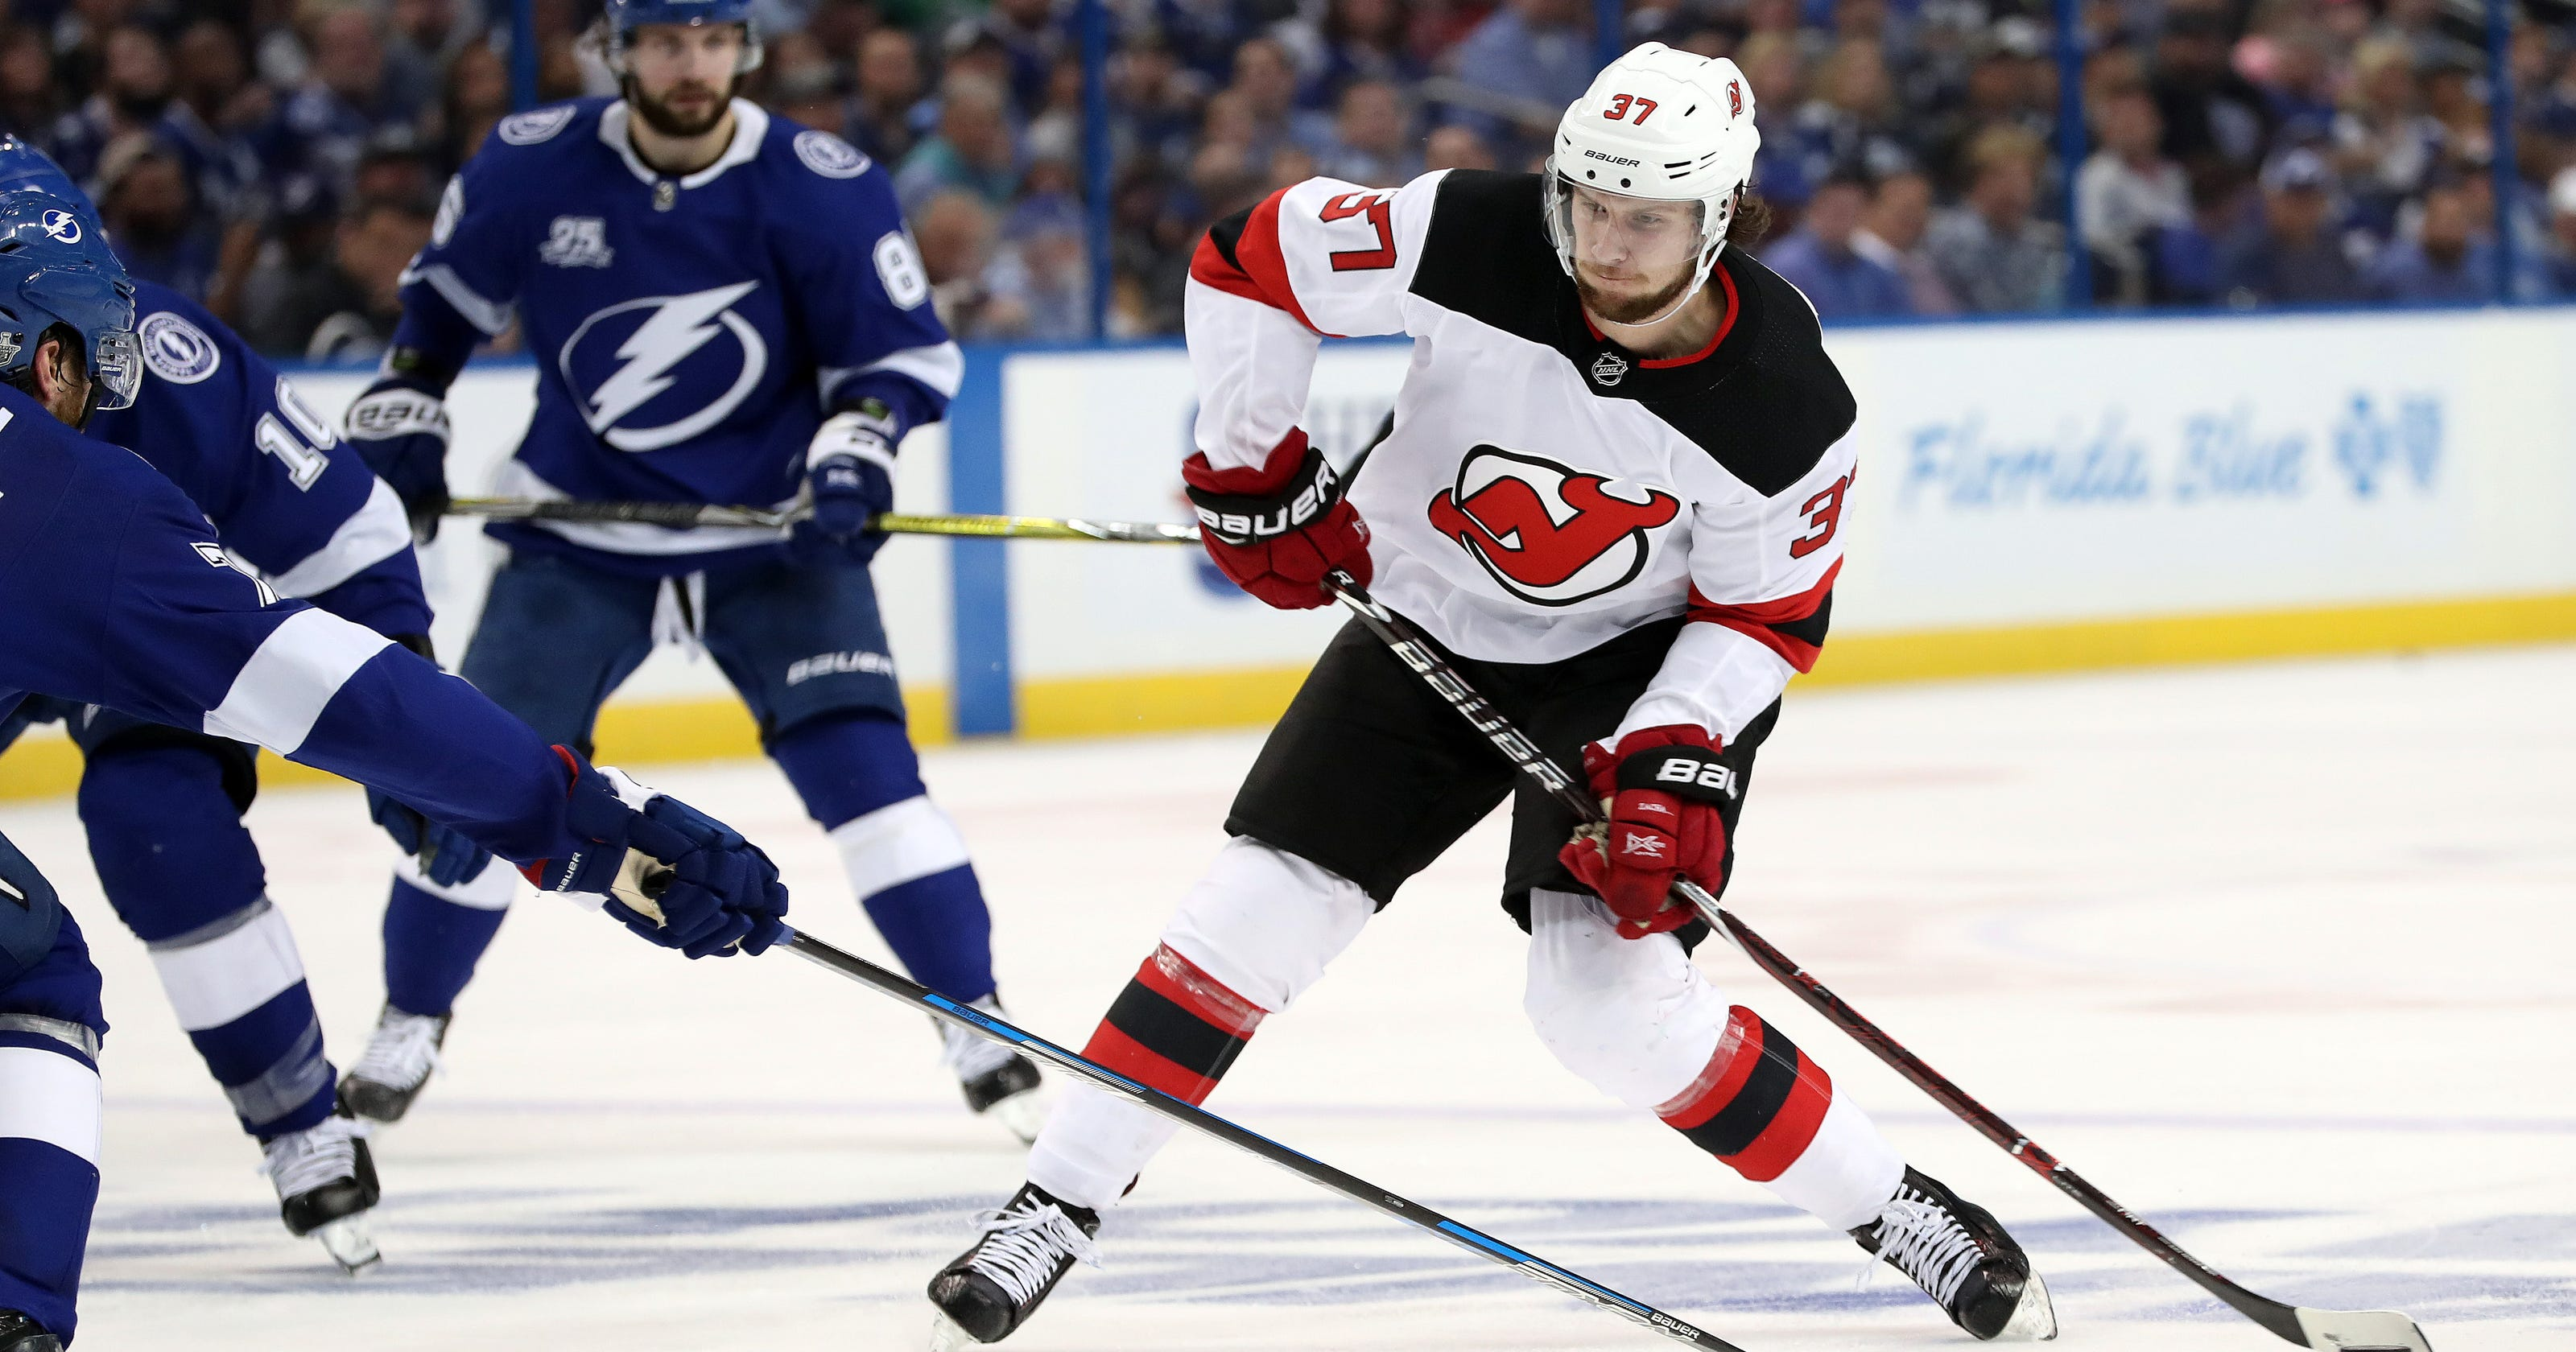 Devils morning notes  Could lineup changes be on the way for Game 2  5bc52218f